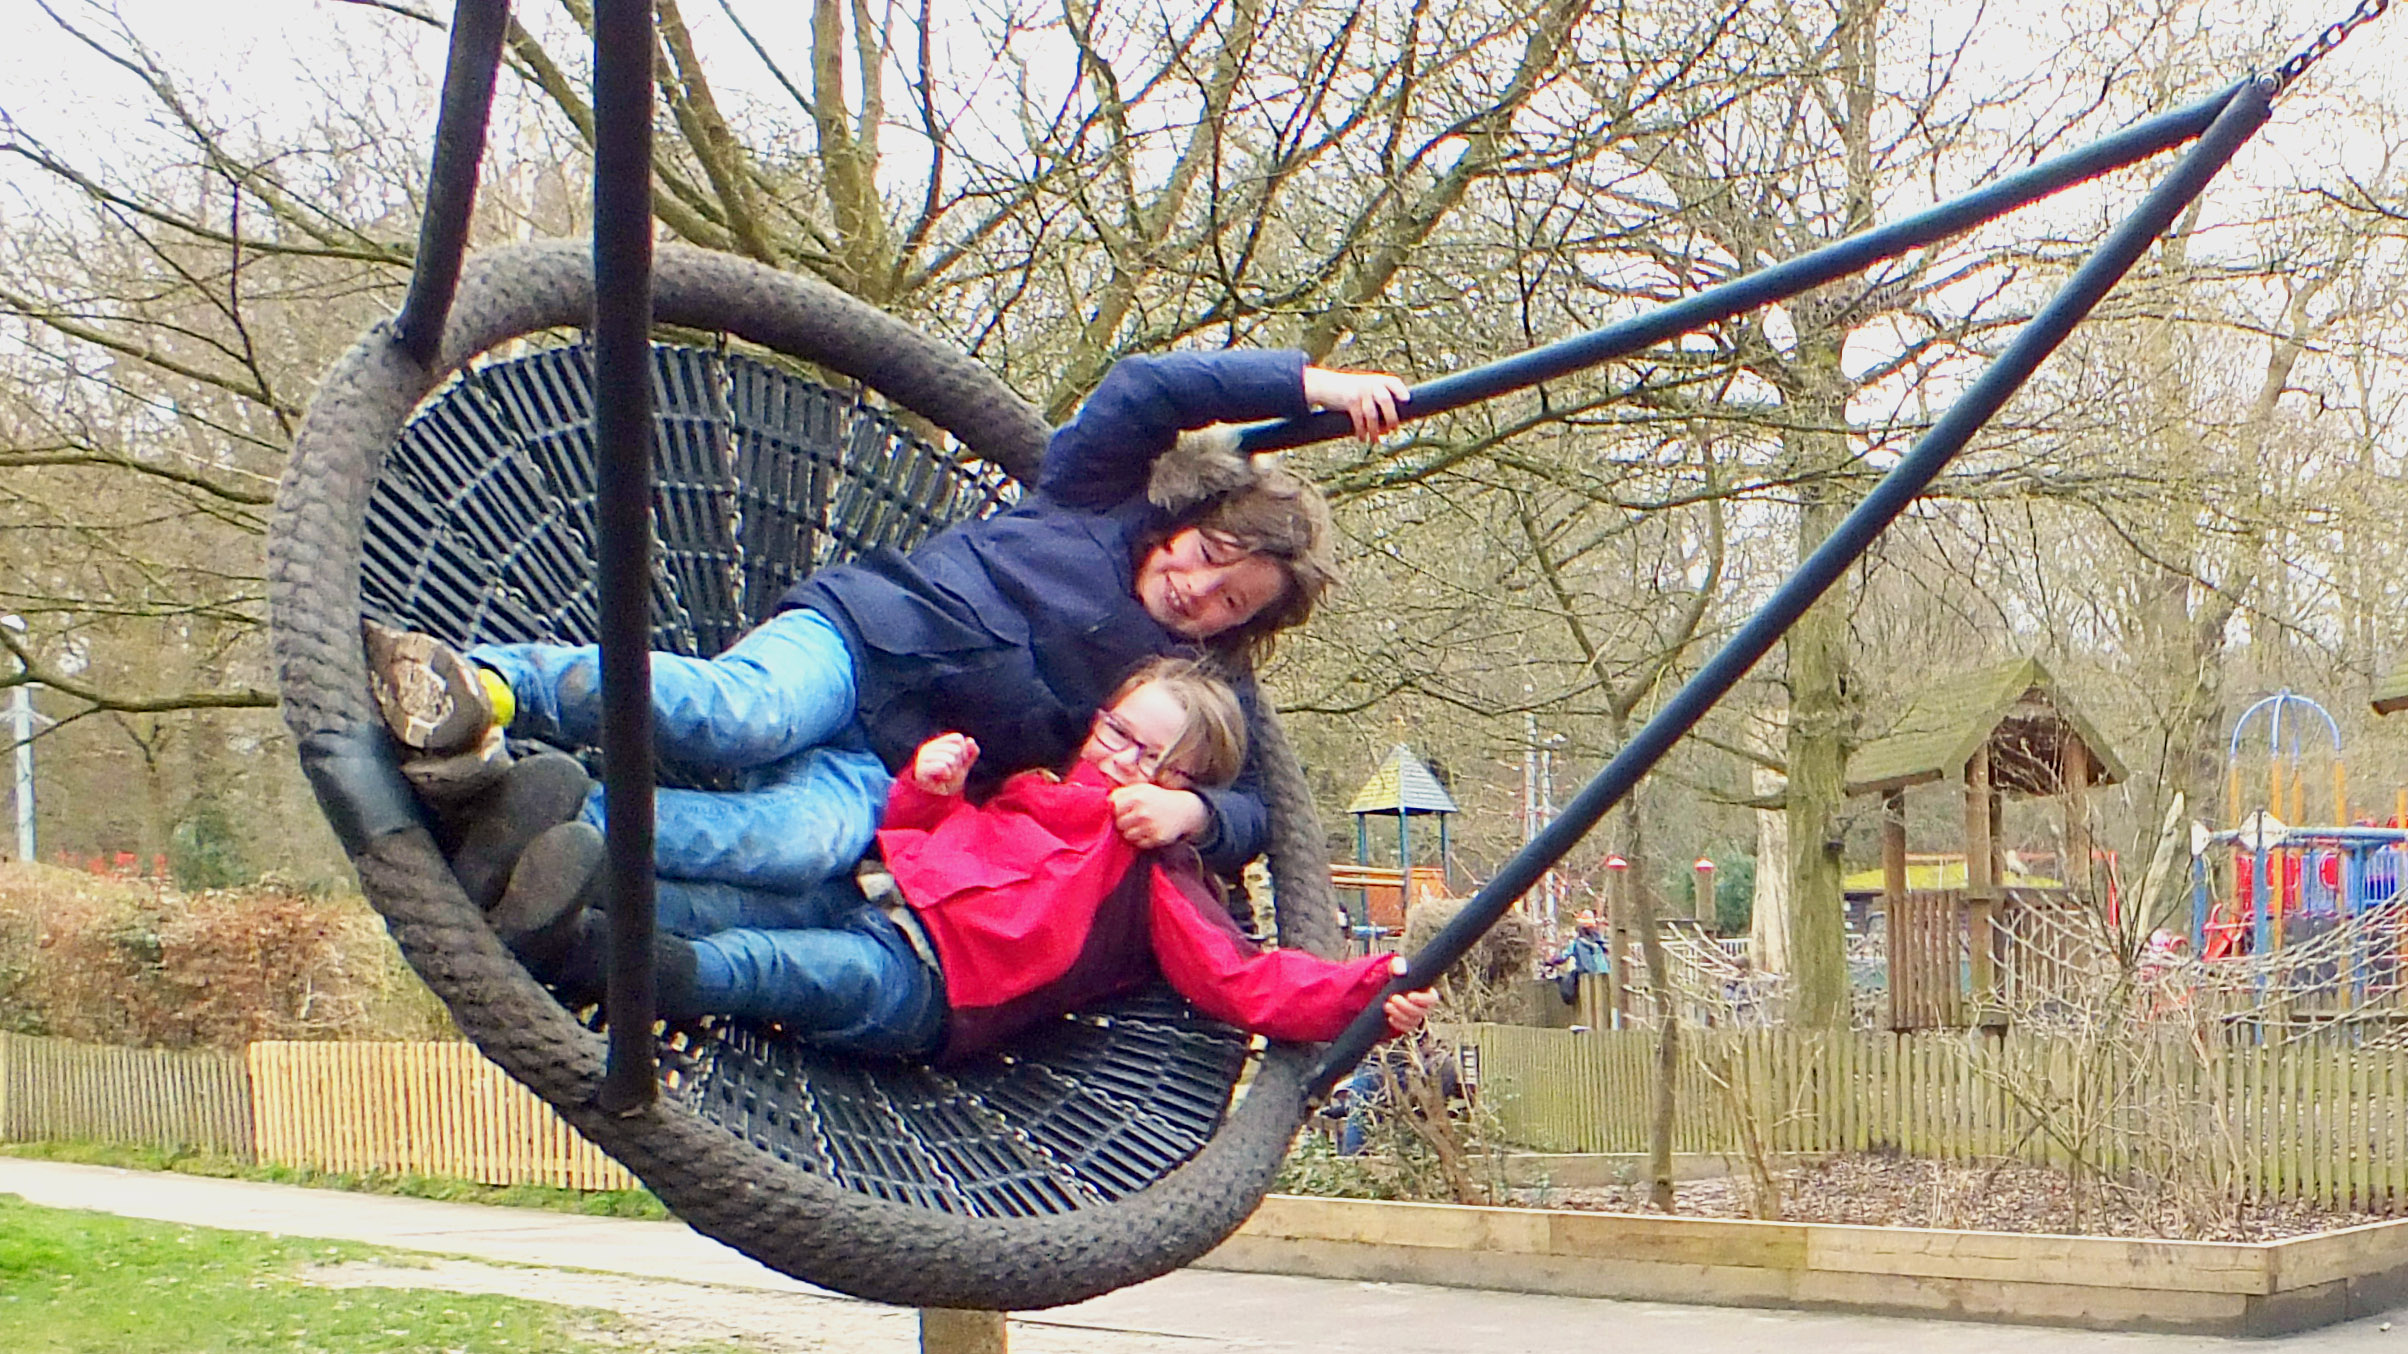 A boy and a girl play on a giant swing wrapped up in winter clothes in Highgate Playground.